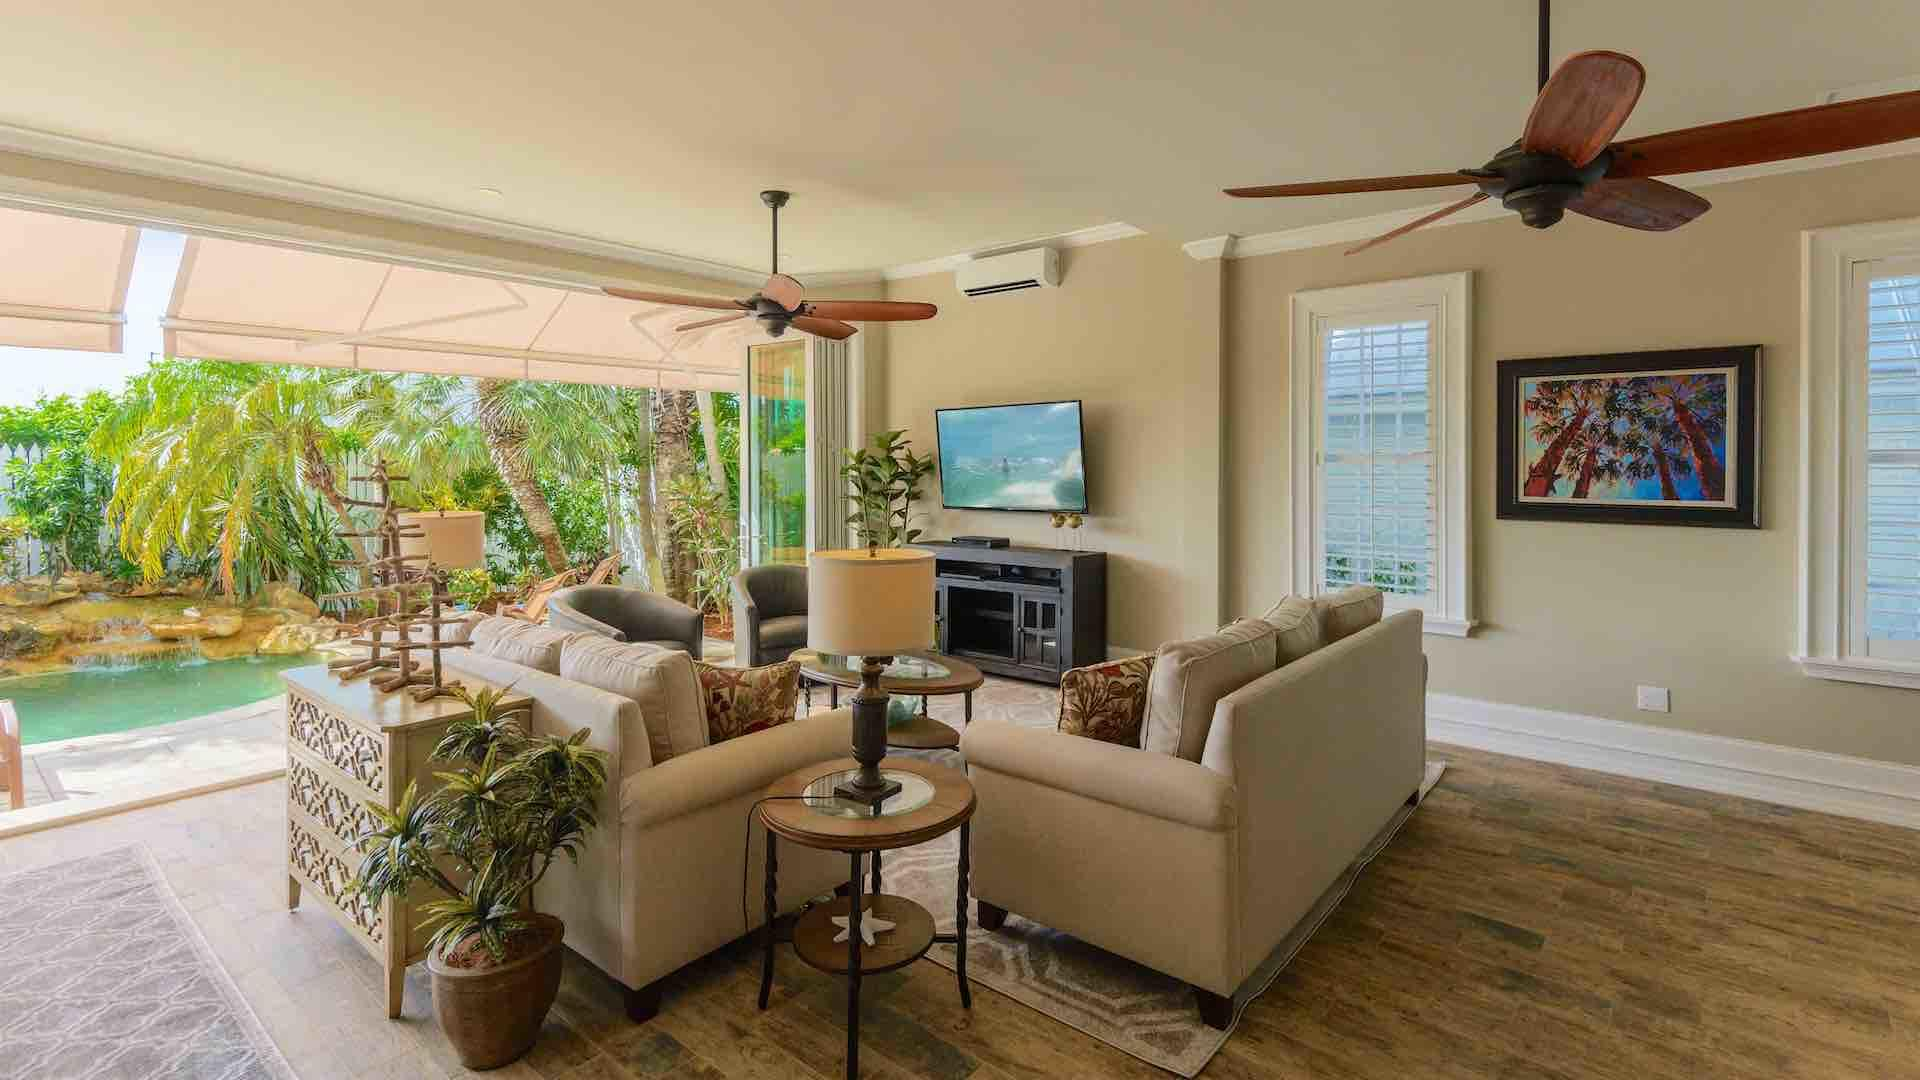 """There is a 60"""" flat screen Smart TV in the living area, and overhead fans..."""